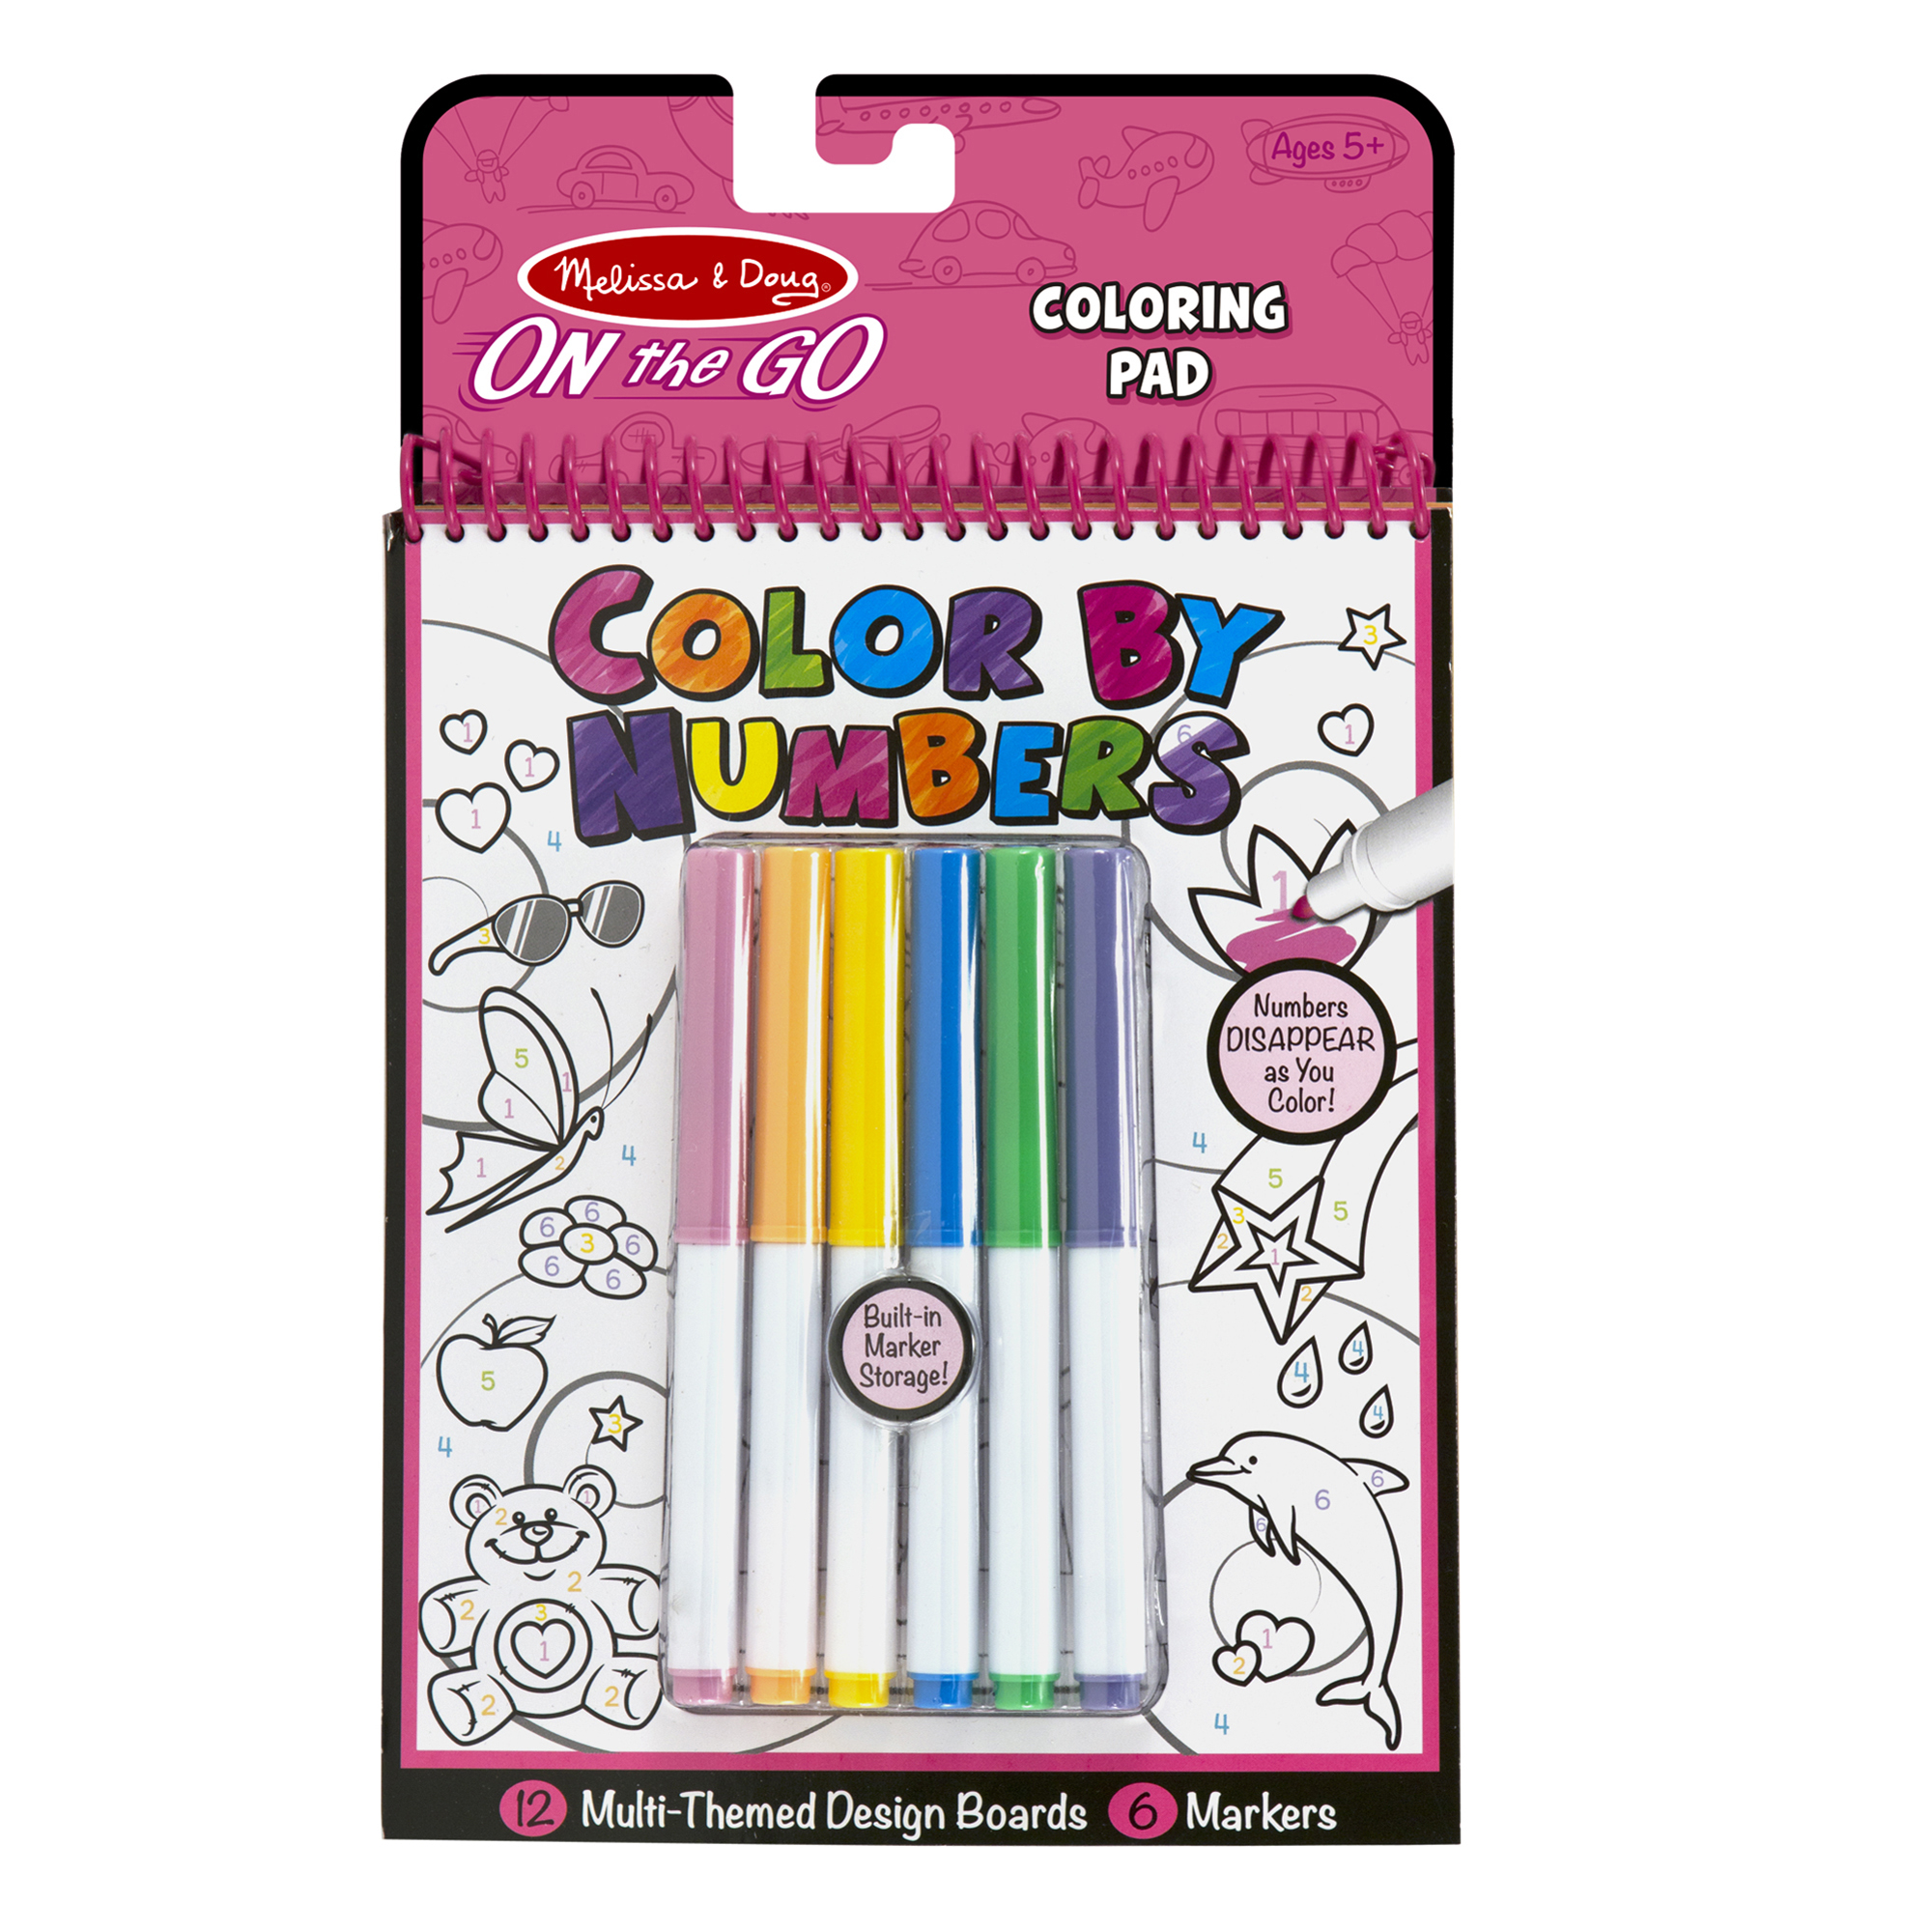 On the Go Color by Numbers Kids Design Boards With 6 Markers  Unicorns Ballet Kittens and More